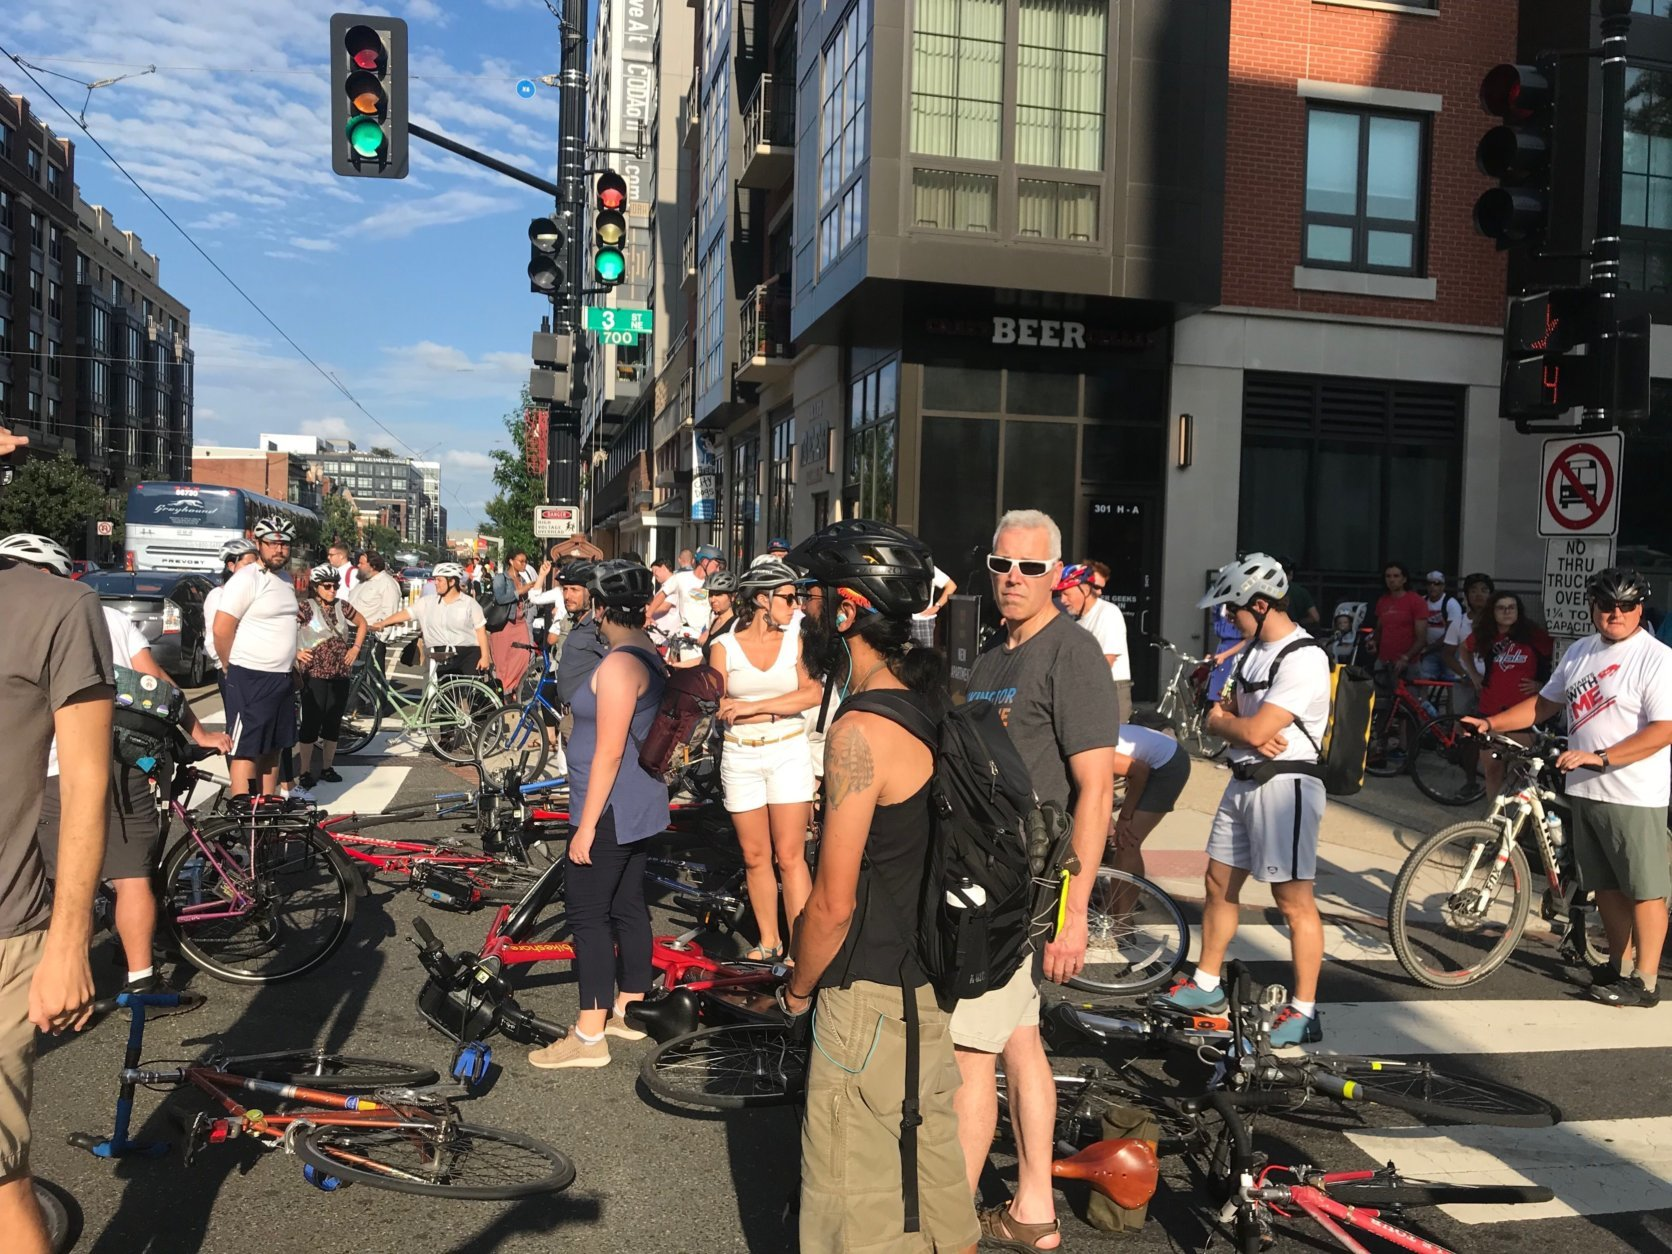 During the short memorial and protest, car horns honked and a few drivers cursed as they saw the crowd of bicyclists causing the momentary slow down. (WTOP/Dick Uliano)